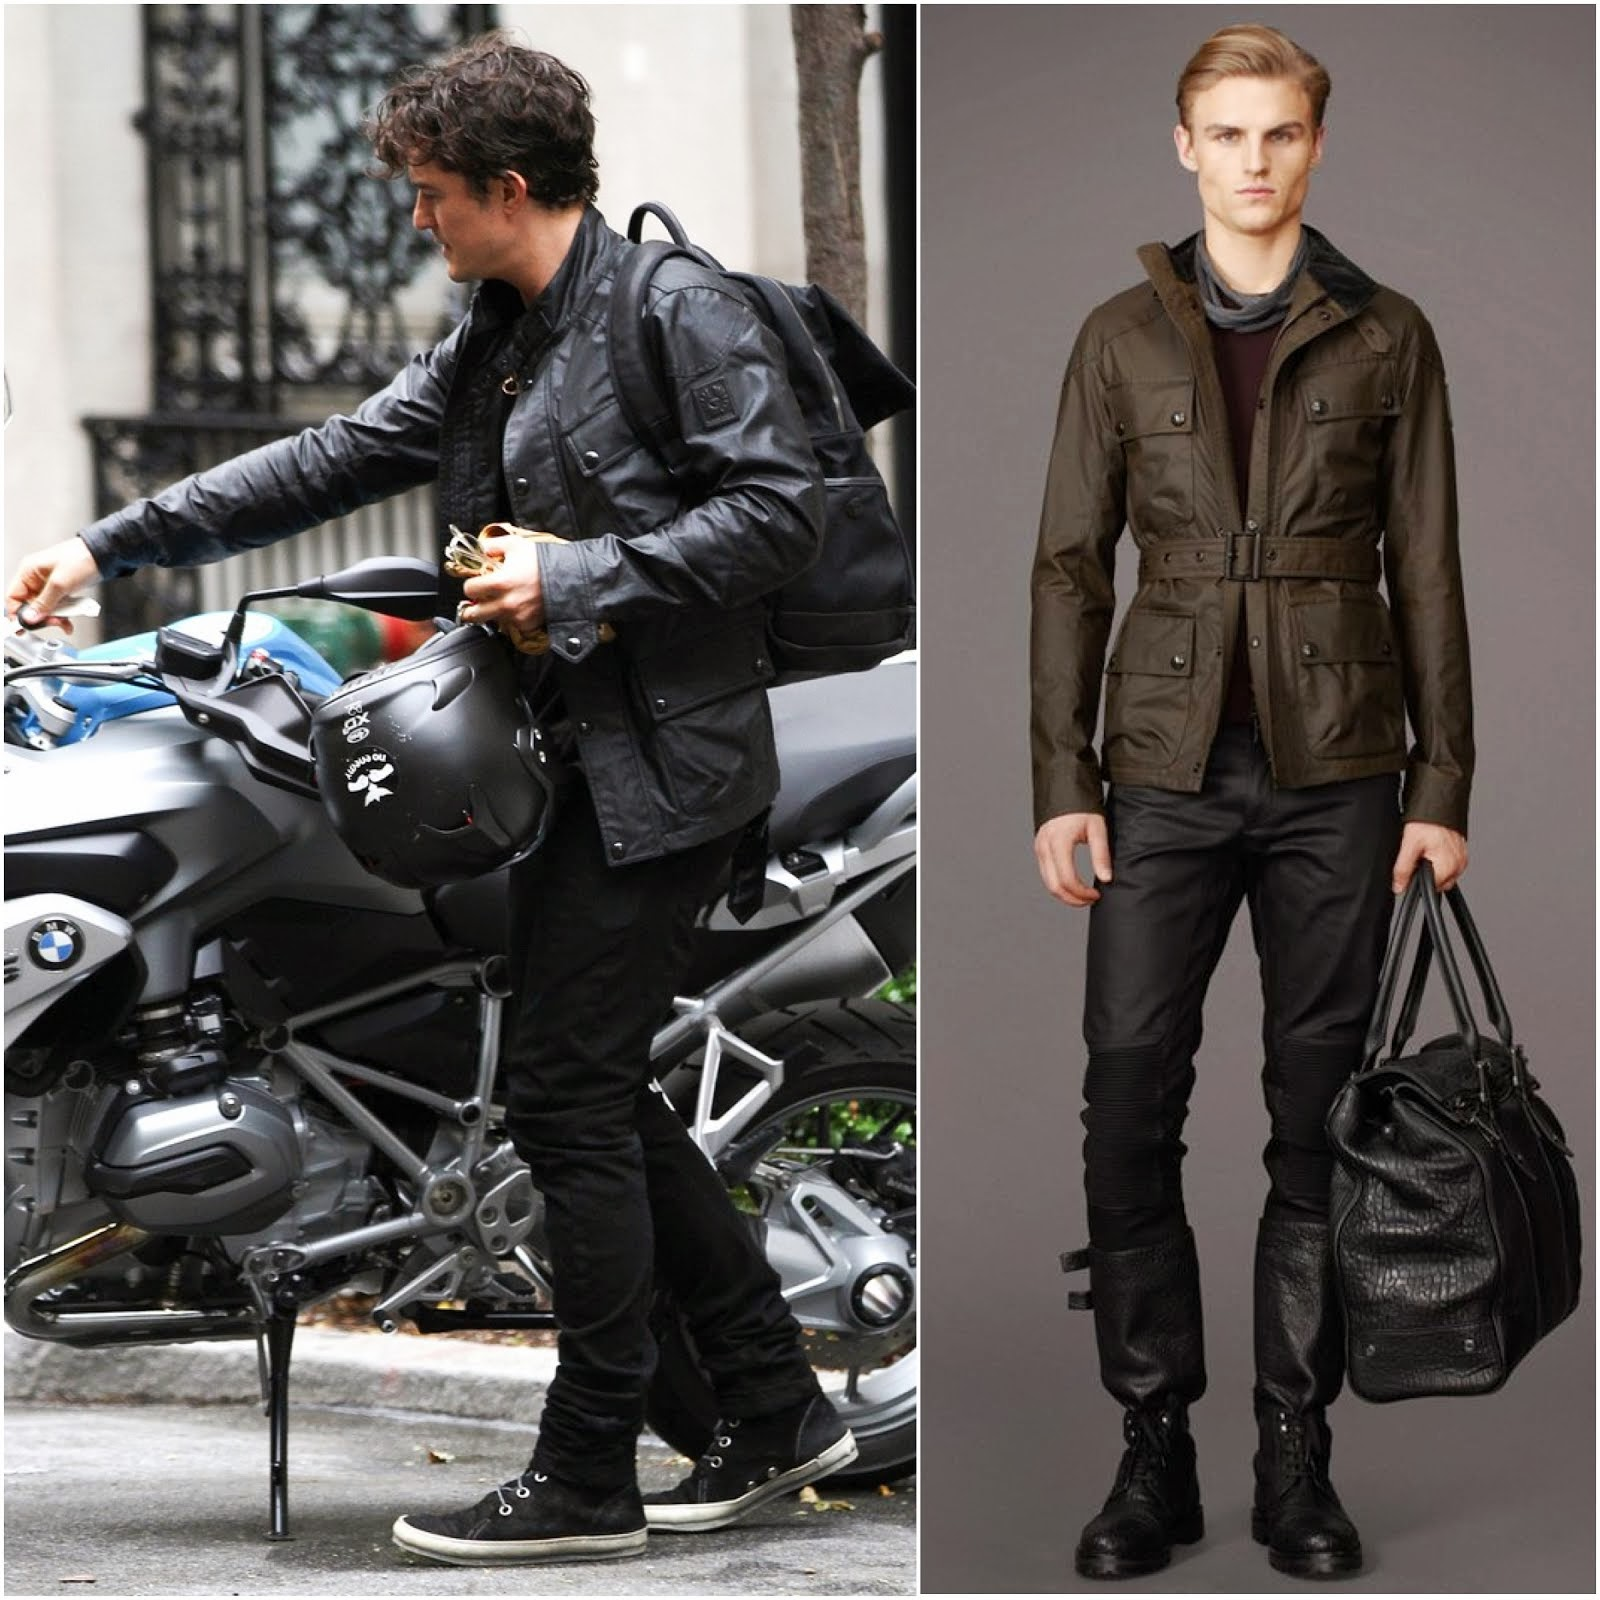 00O00 MENSWEAR BLOG: ORLANDO BLOOM IN BELSTAFF CIRCUITMASTER JACKET, NYC JULY 2013